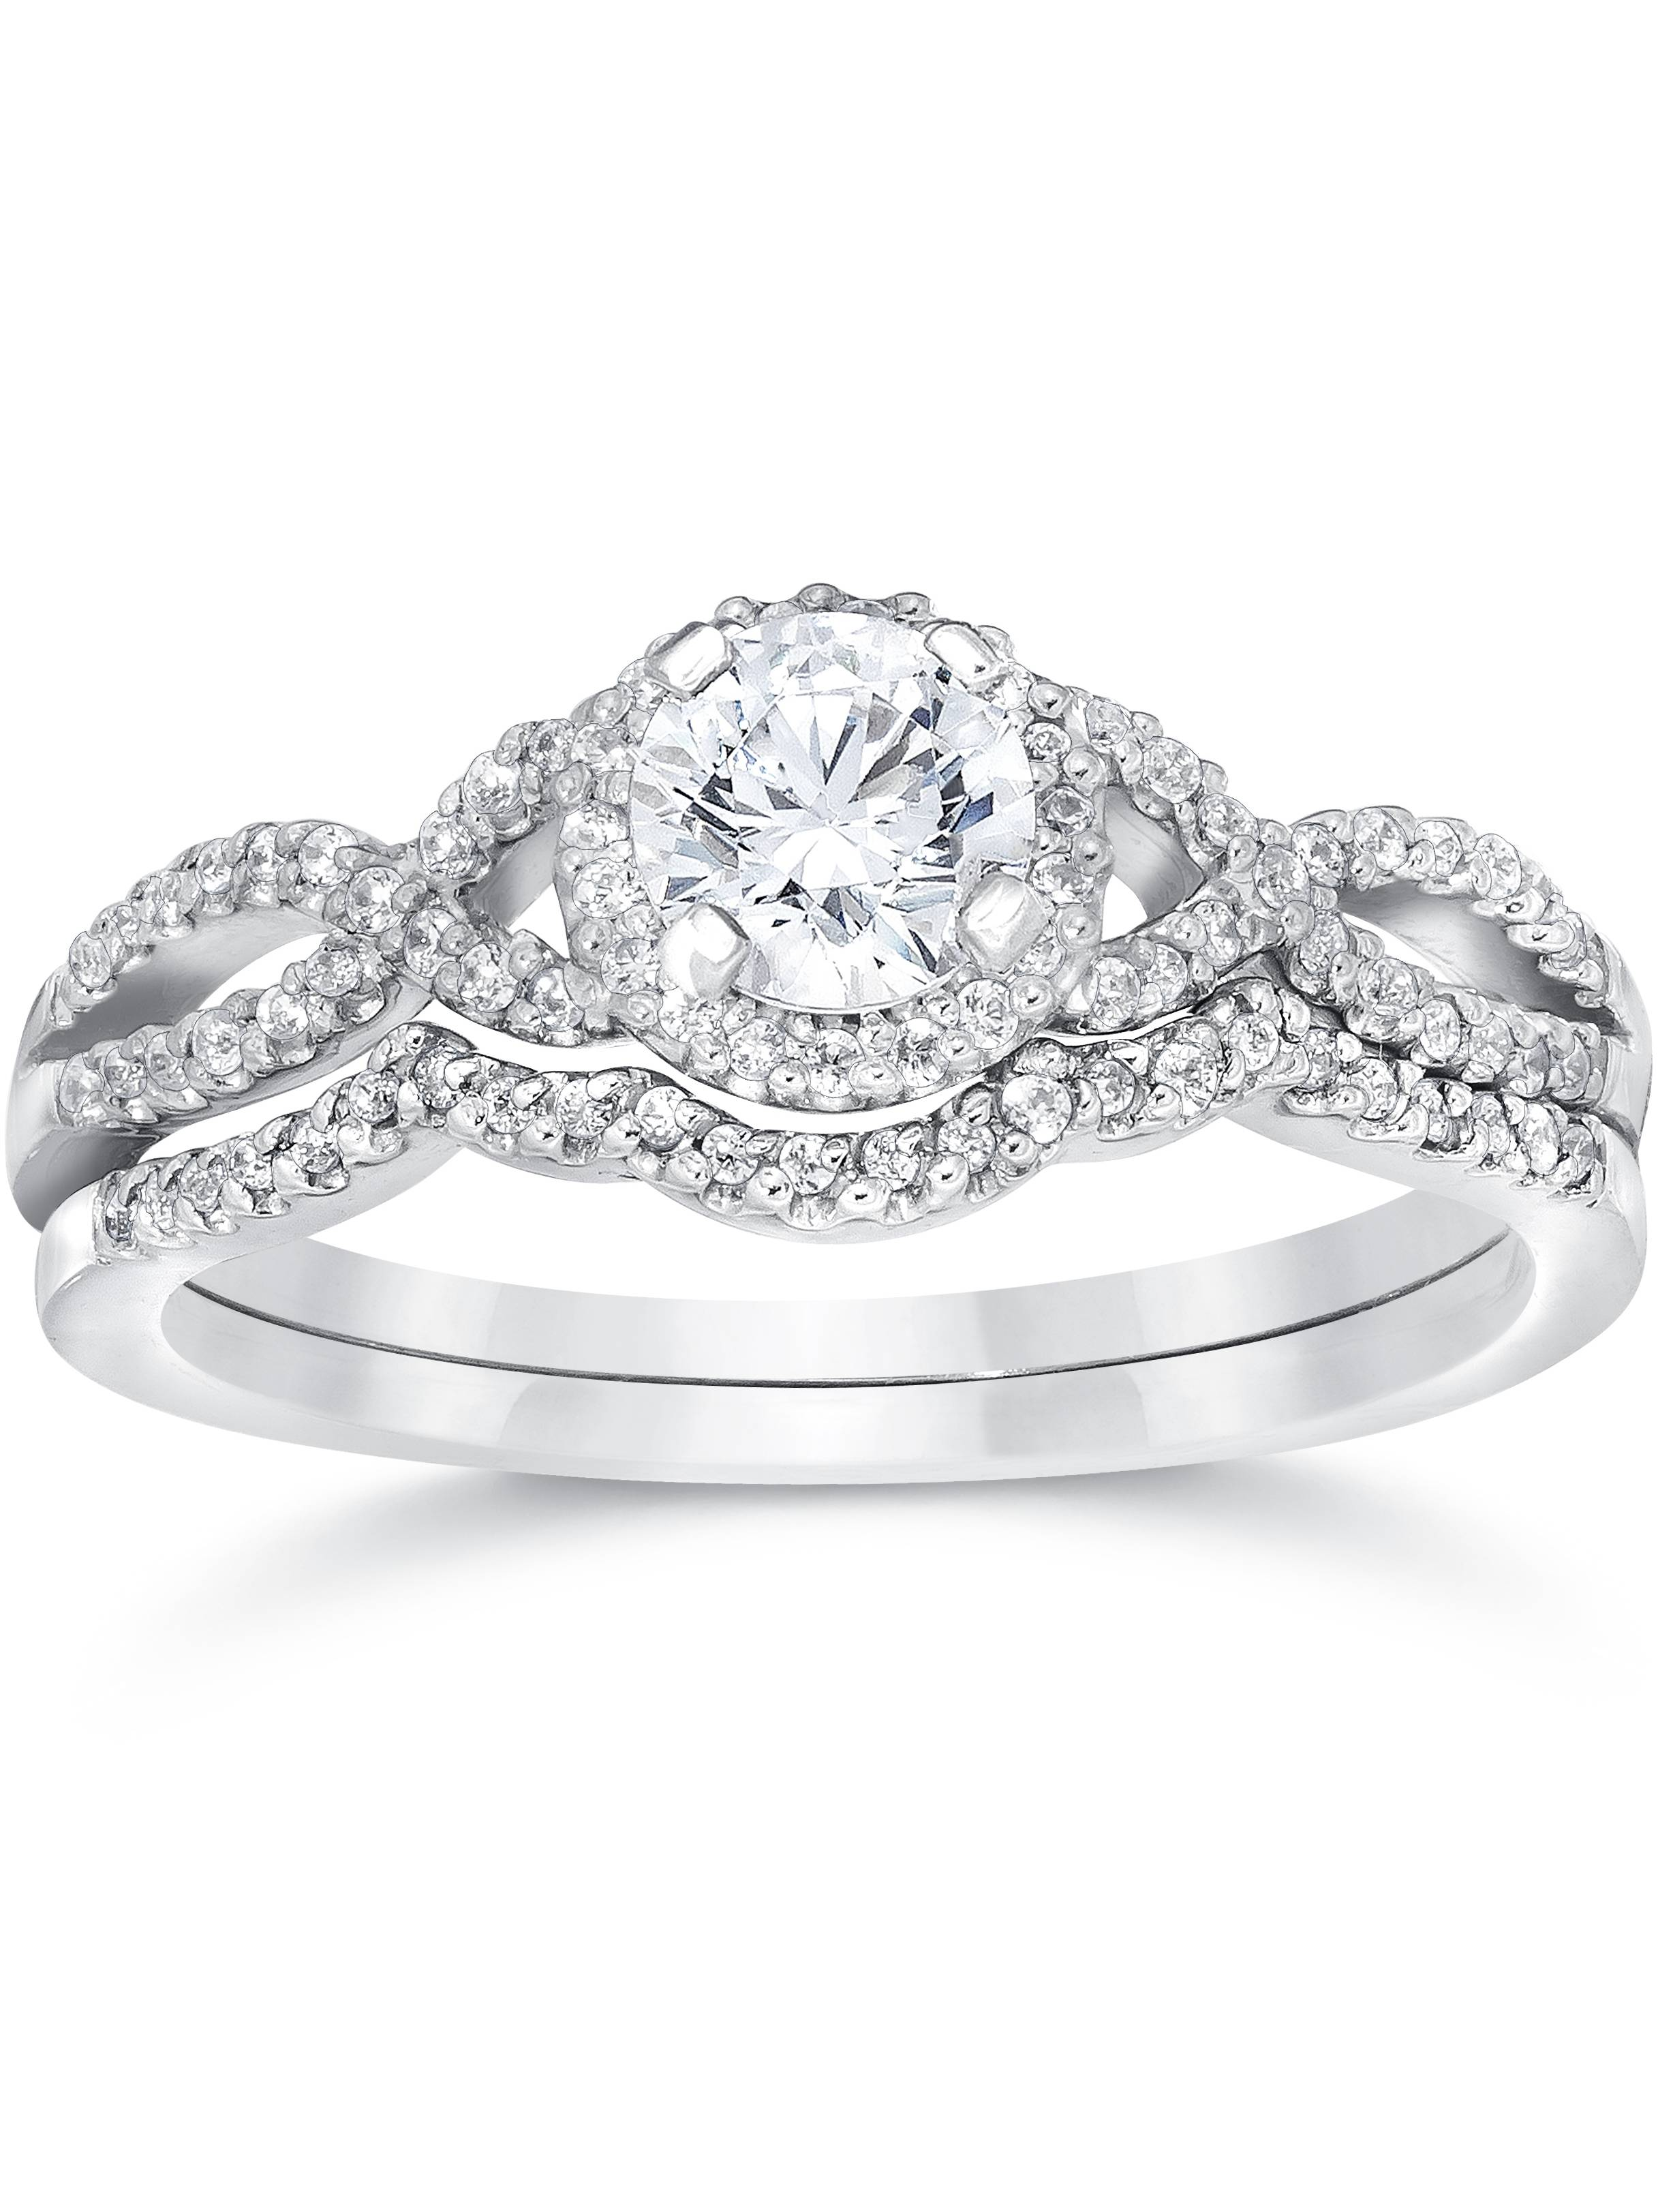 3/4ct Diamond Infinity Engagement Wedding Ring Set 14K White Gold